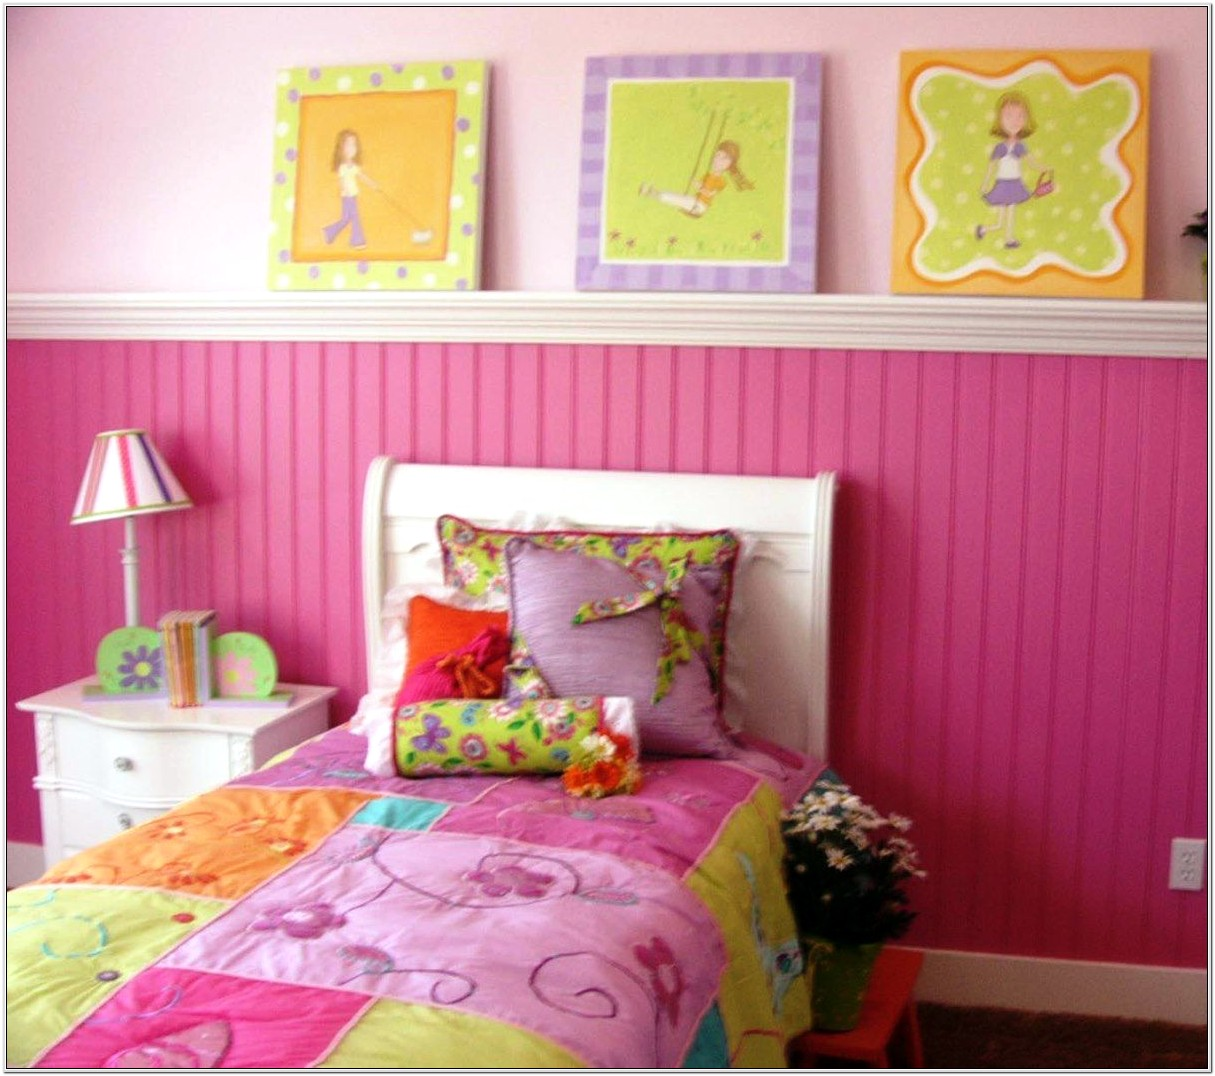 Decorating Ideas For Pictures In A Bedroom